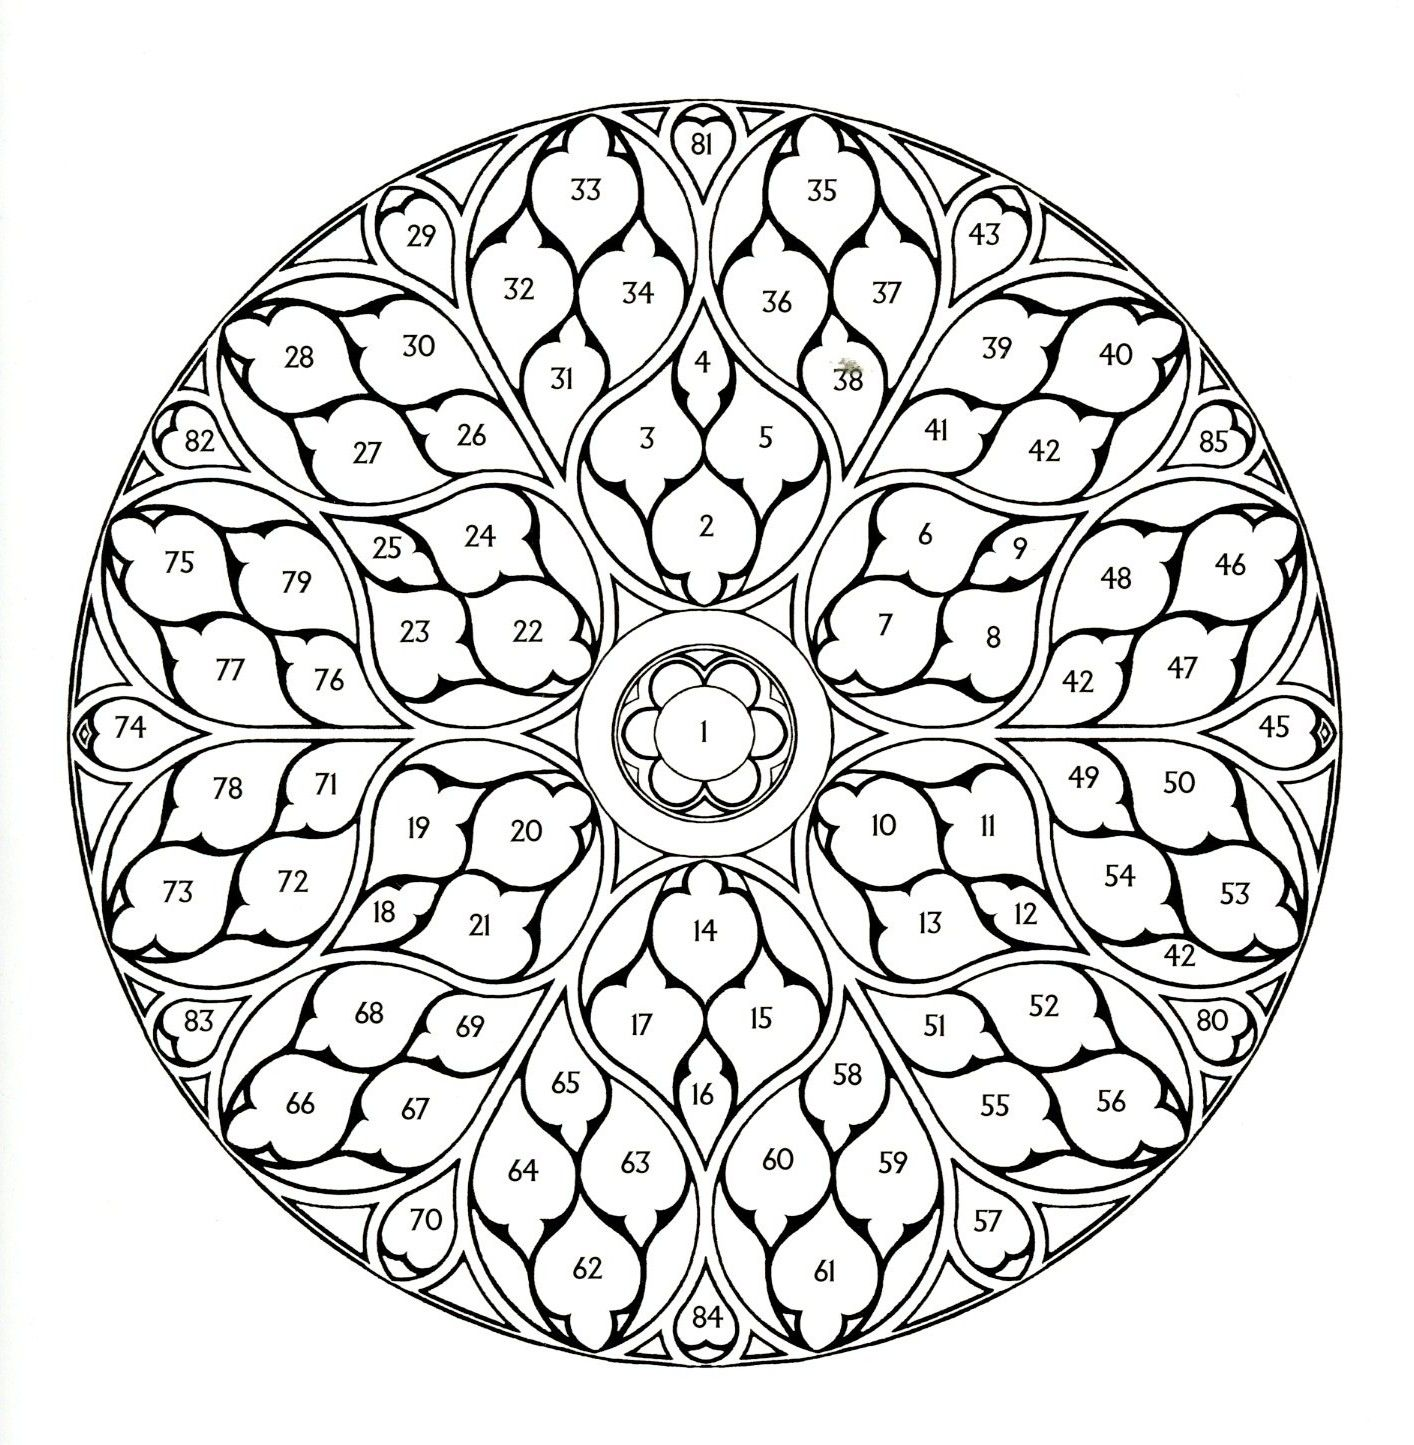 Img067 Jpg 1414 1445 Rose Coloring Pages Rose Window Mandala